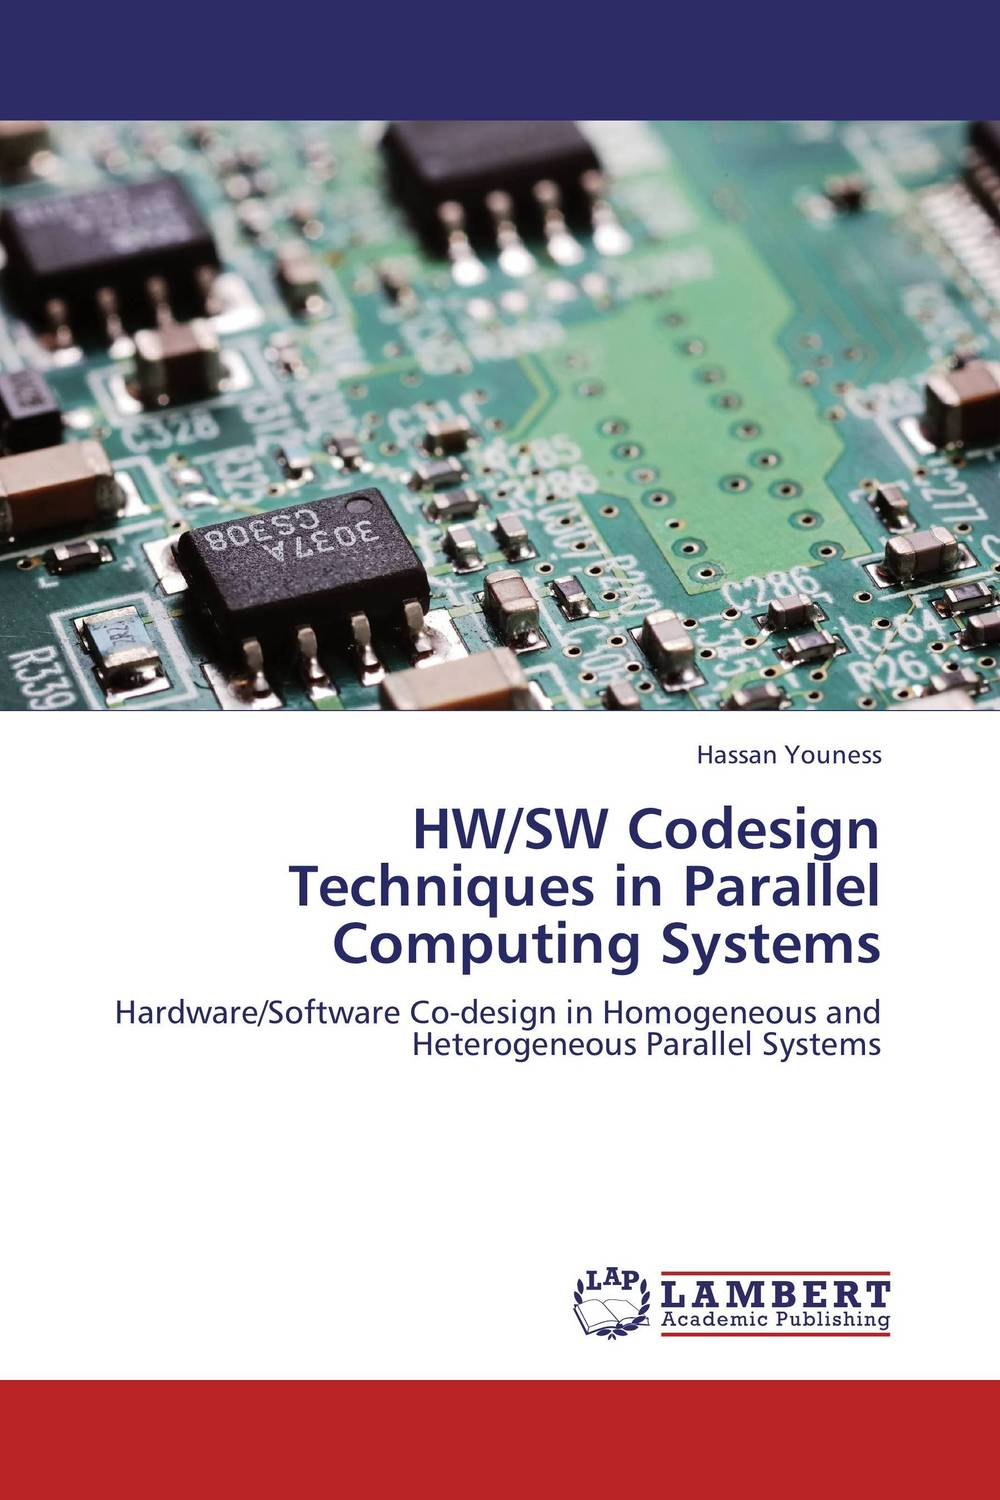 HW/SW Codesign Techniques in Parallel Computing Systems intelligent scheduling of parallel harware tests